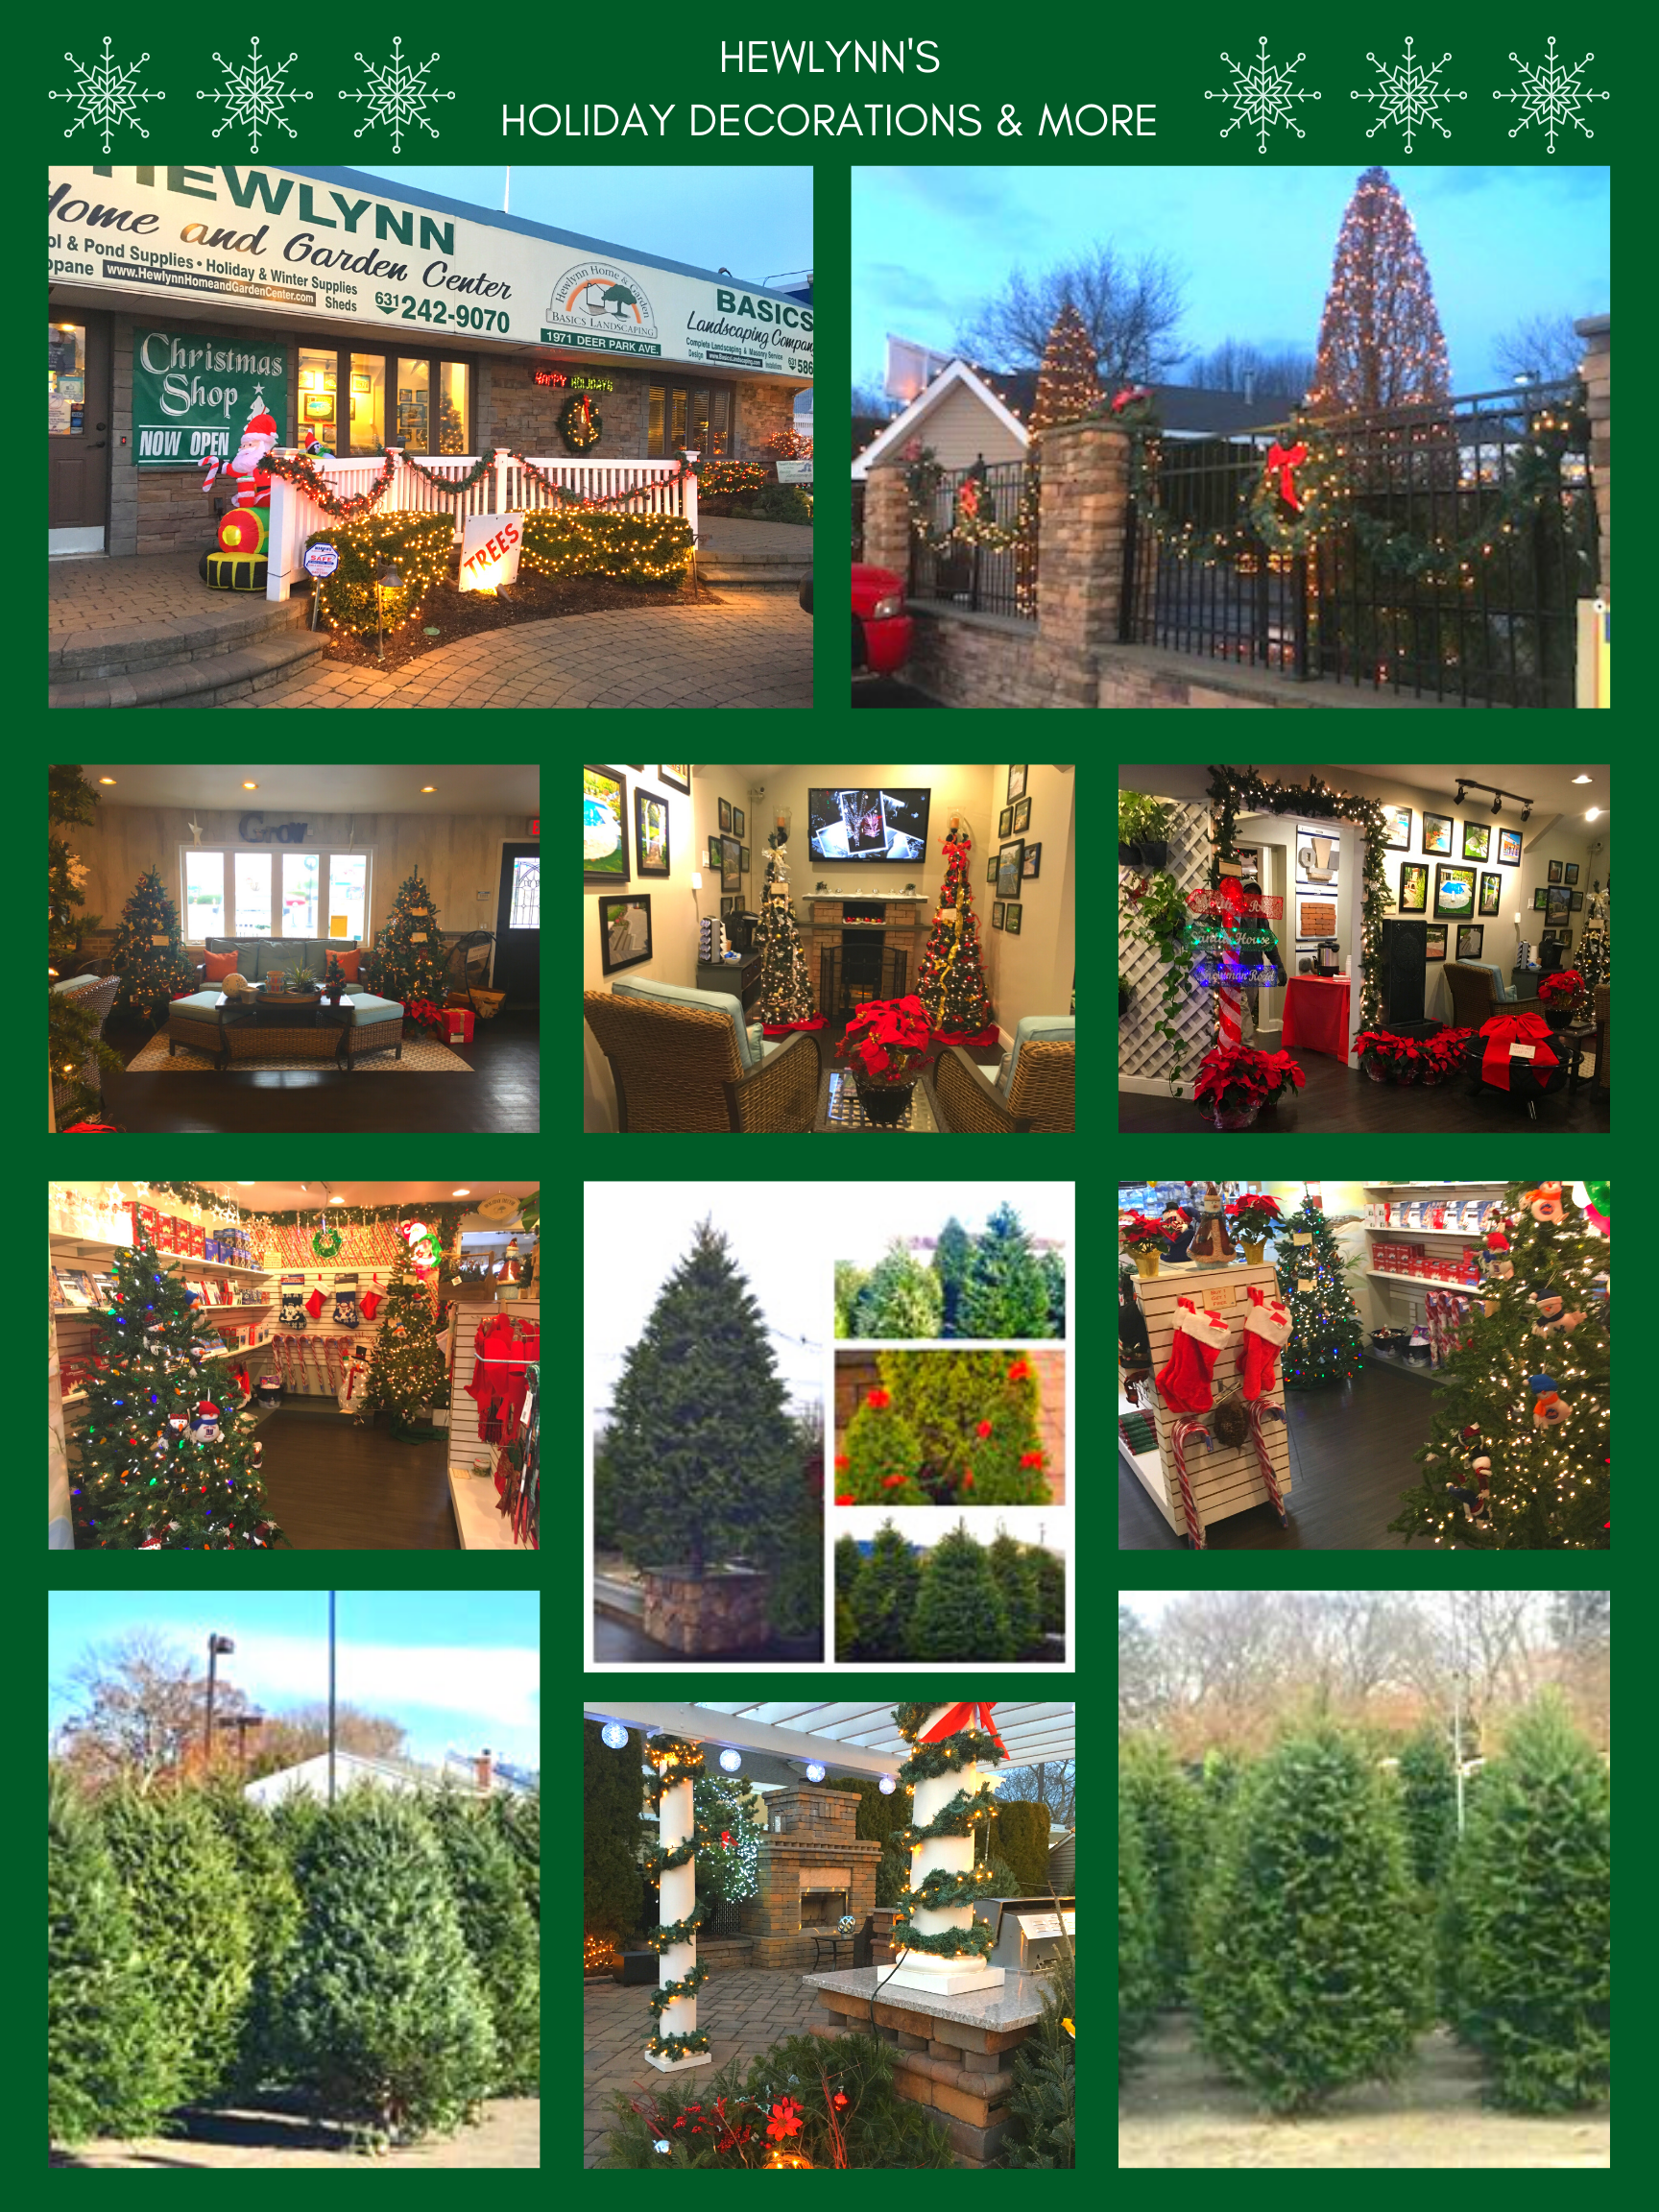 HEWLYNN'S HOLIDAY DECORATIONS & MORE